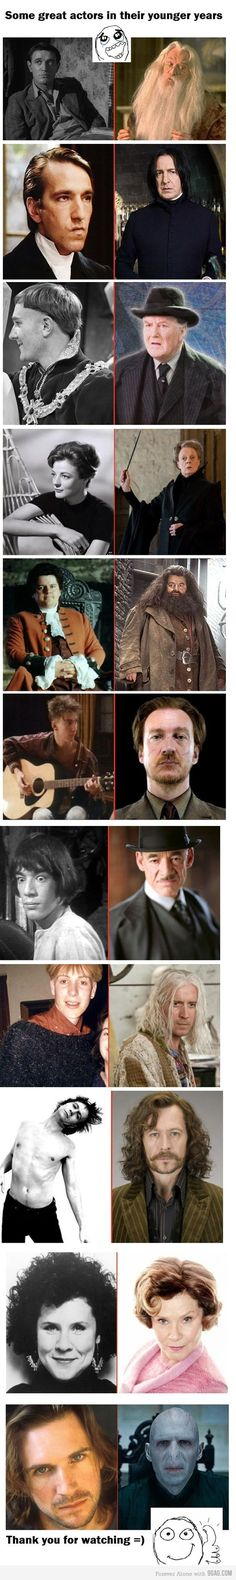 actors in their younger years.